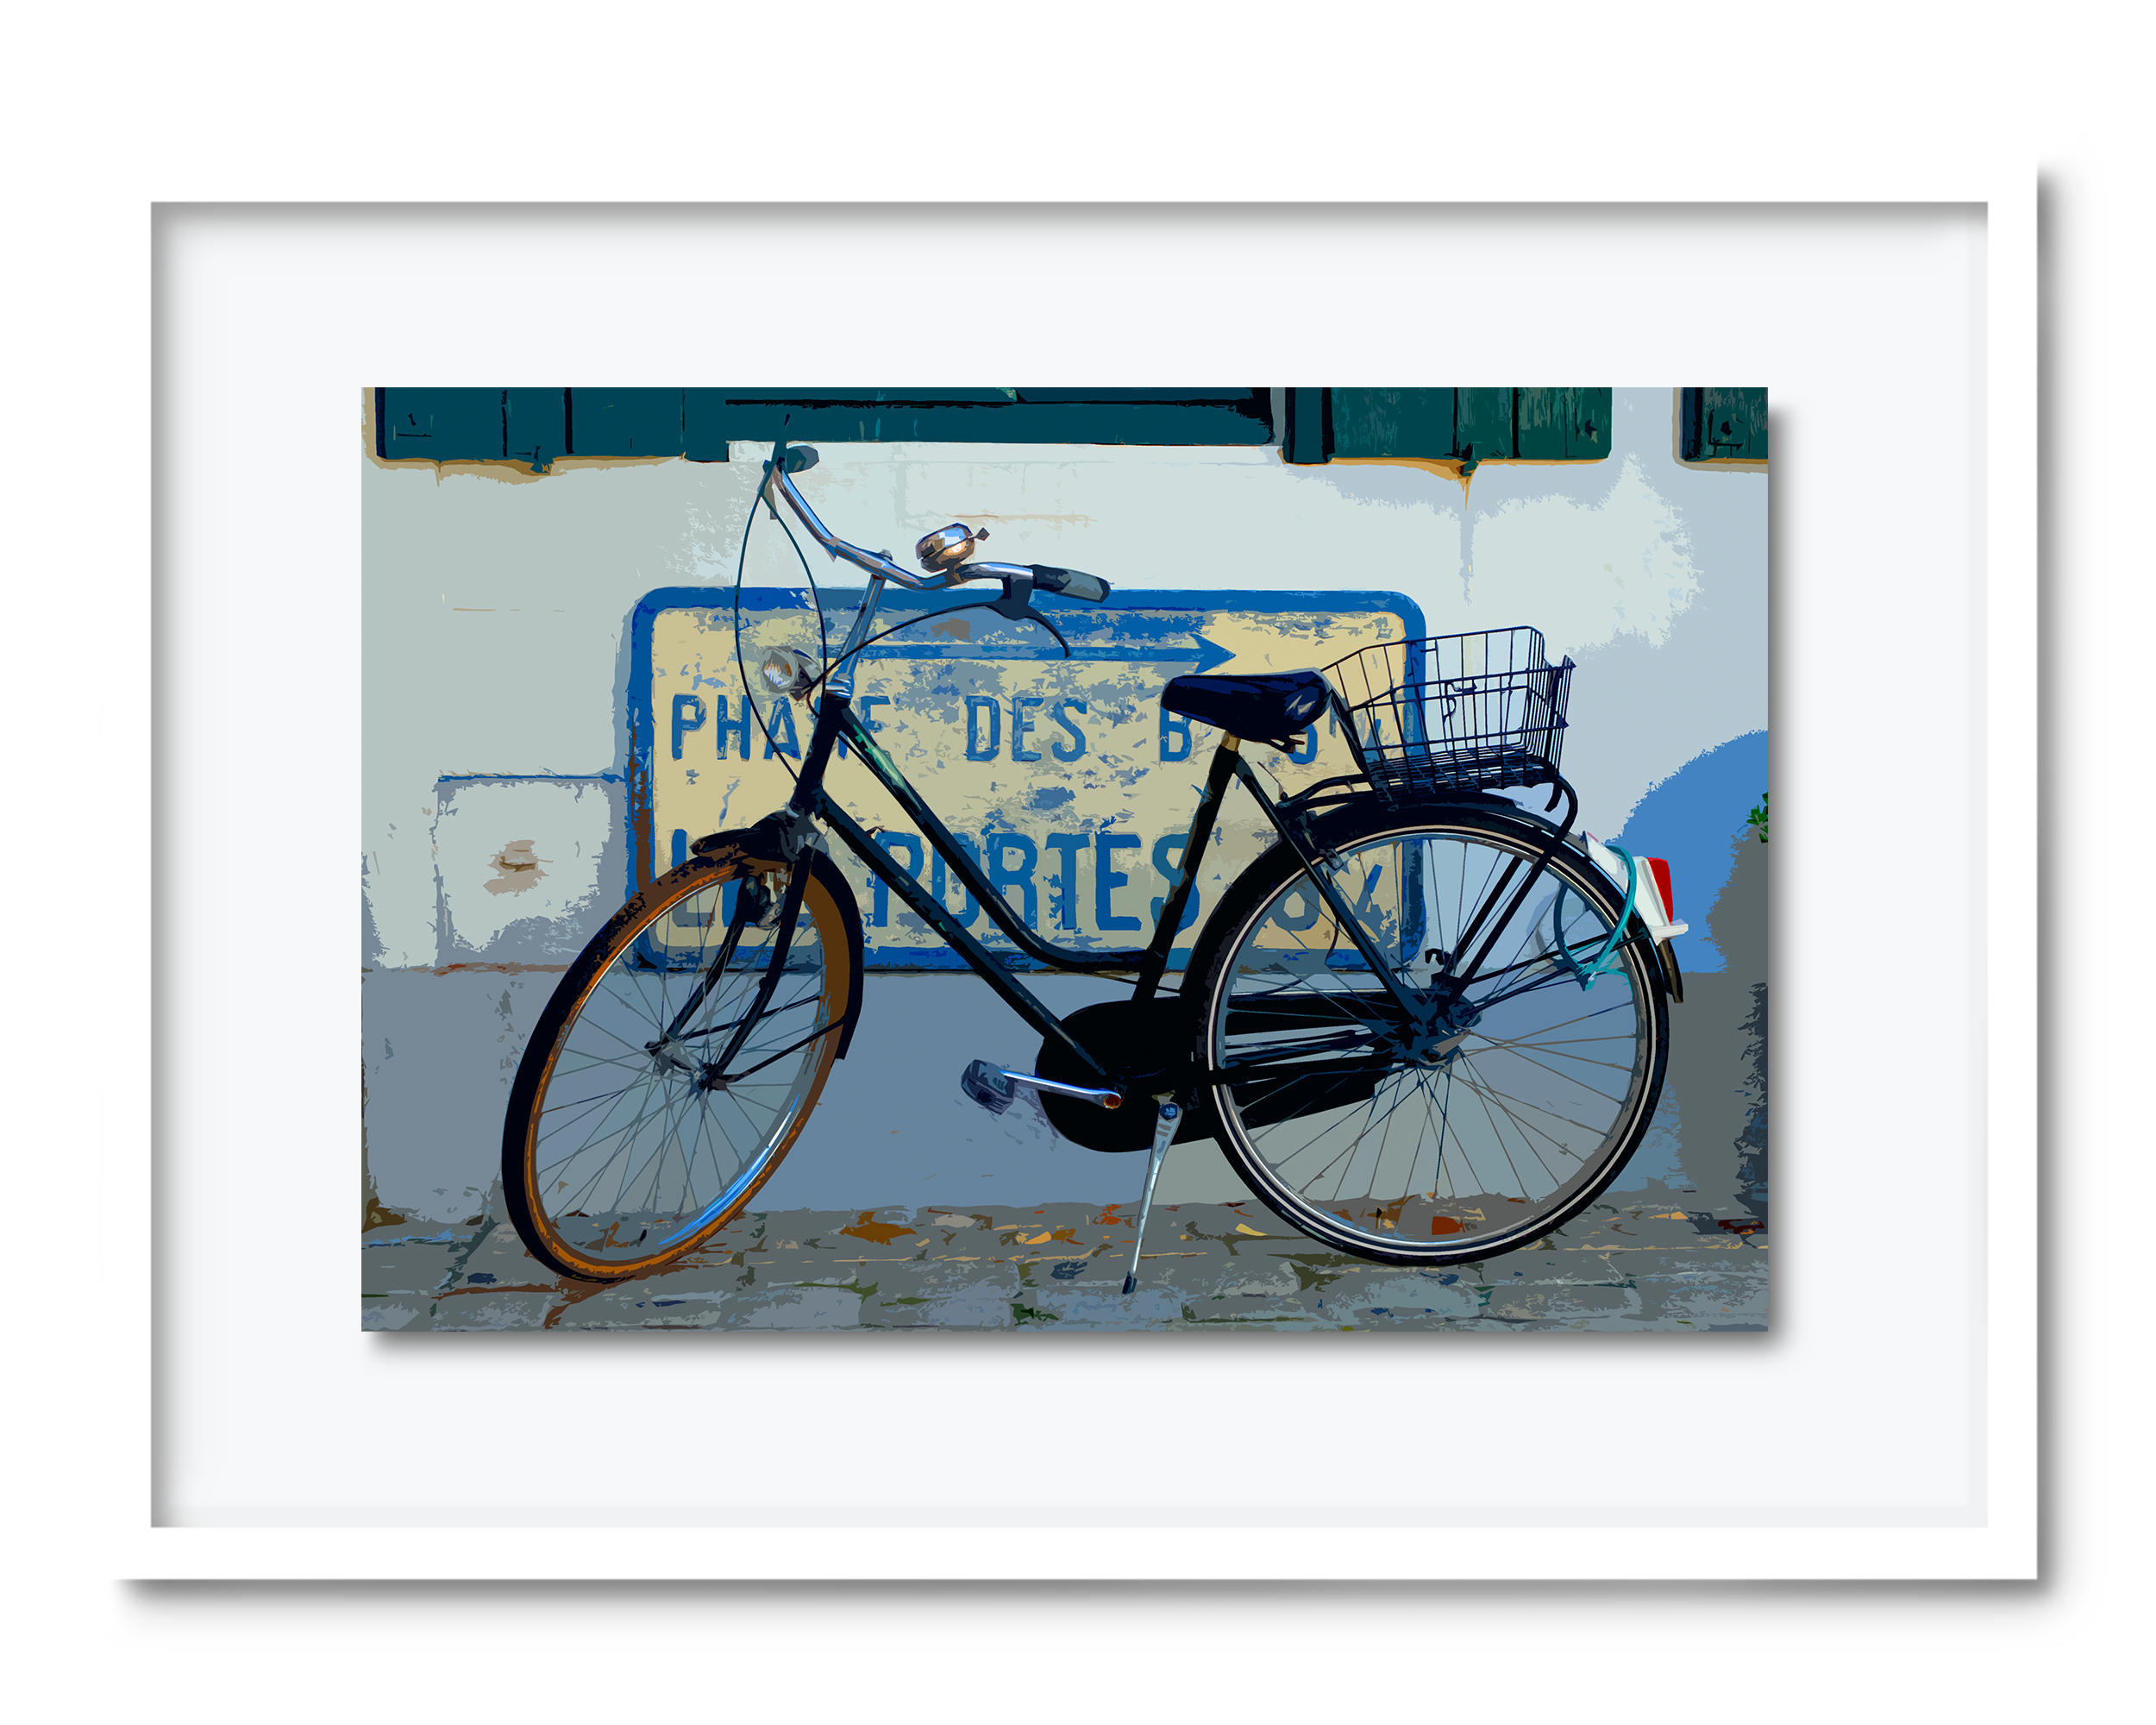 50.david-pearce-bicycle-france.png